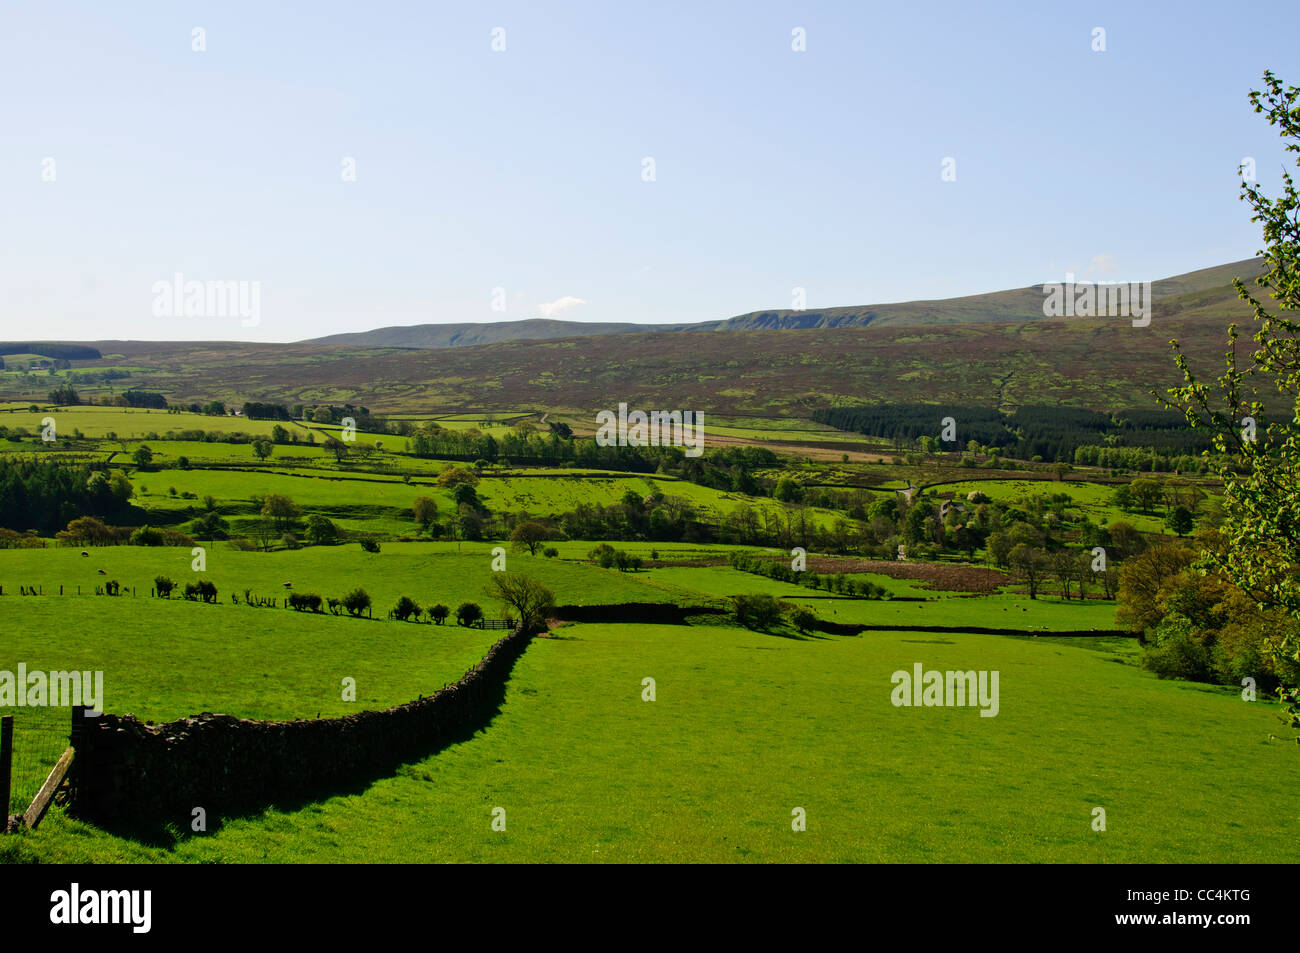 St John's in the Vale is a glacial valley in the Lake District National Park,Cumbria, England. Stock Photo